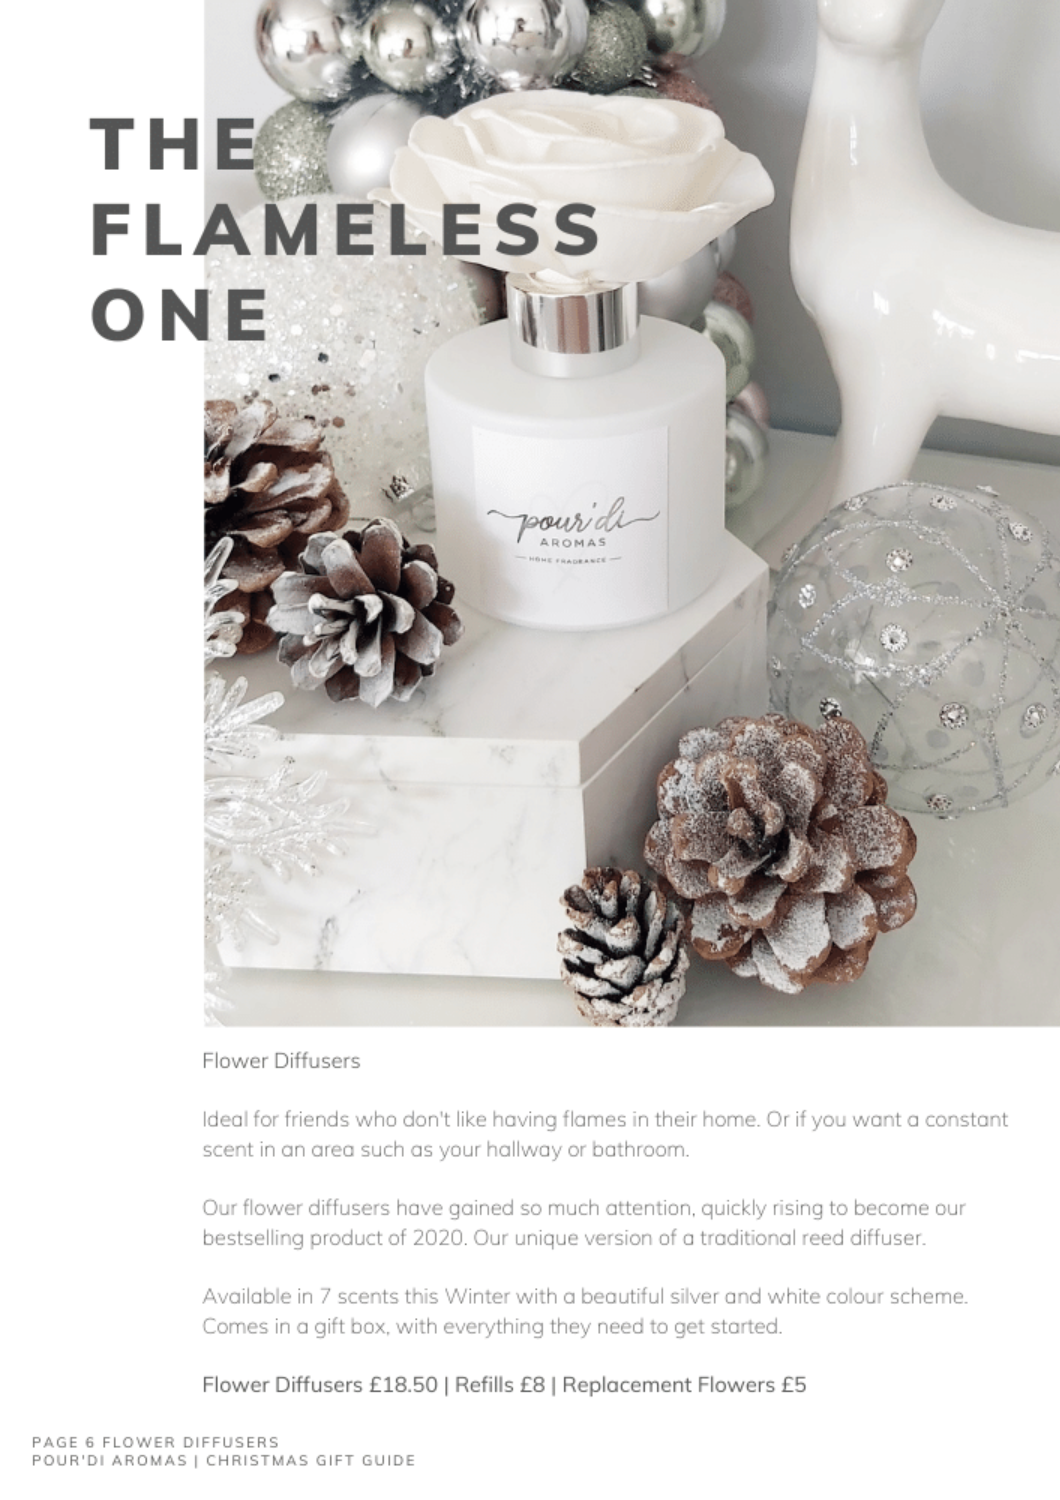 The Flameless One. Flower Diffusers